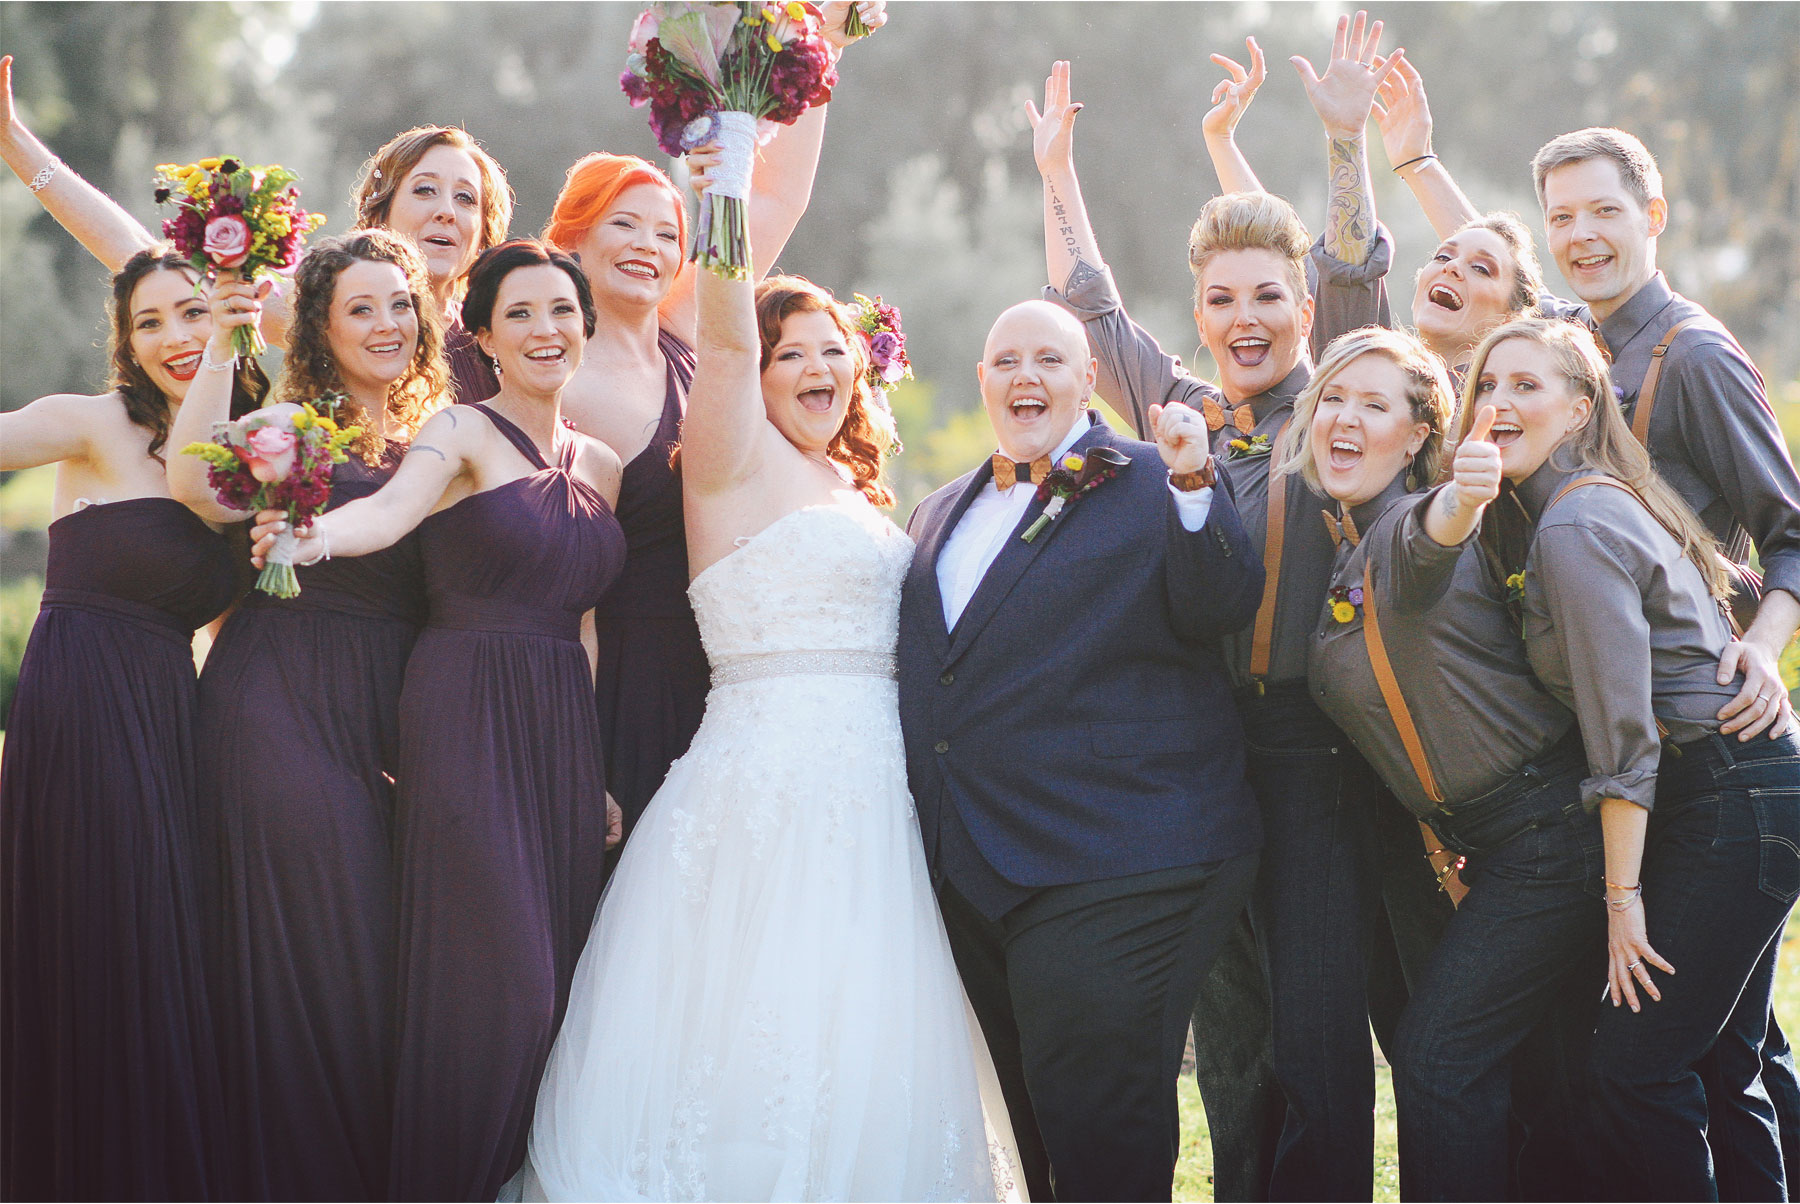 13-Los-Angeles-California-Wedding-Photographer-by-Vick-Photography-Highland-Springs-Ranch-LGBT-Wedding-Party-Group-Rebecca-and-Terri.jpg